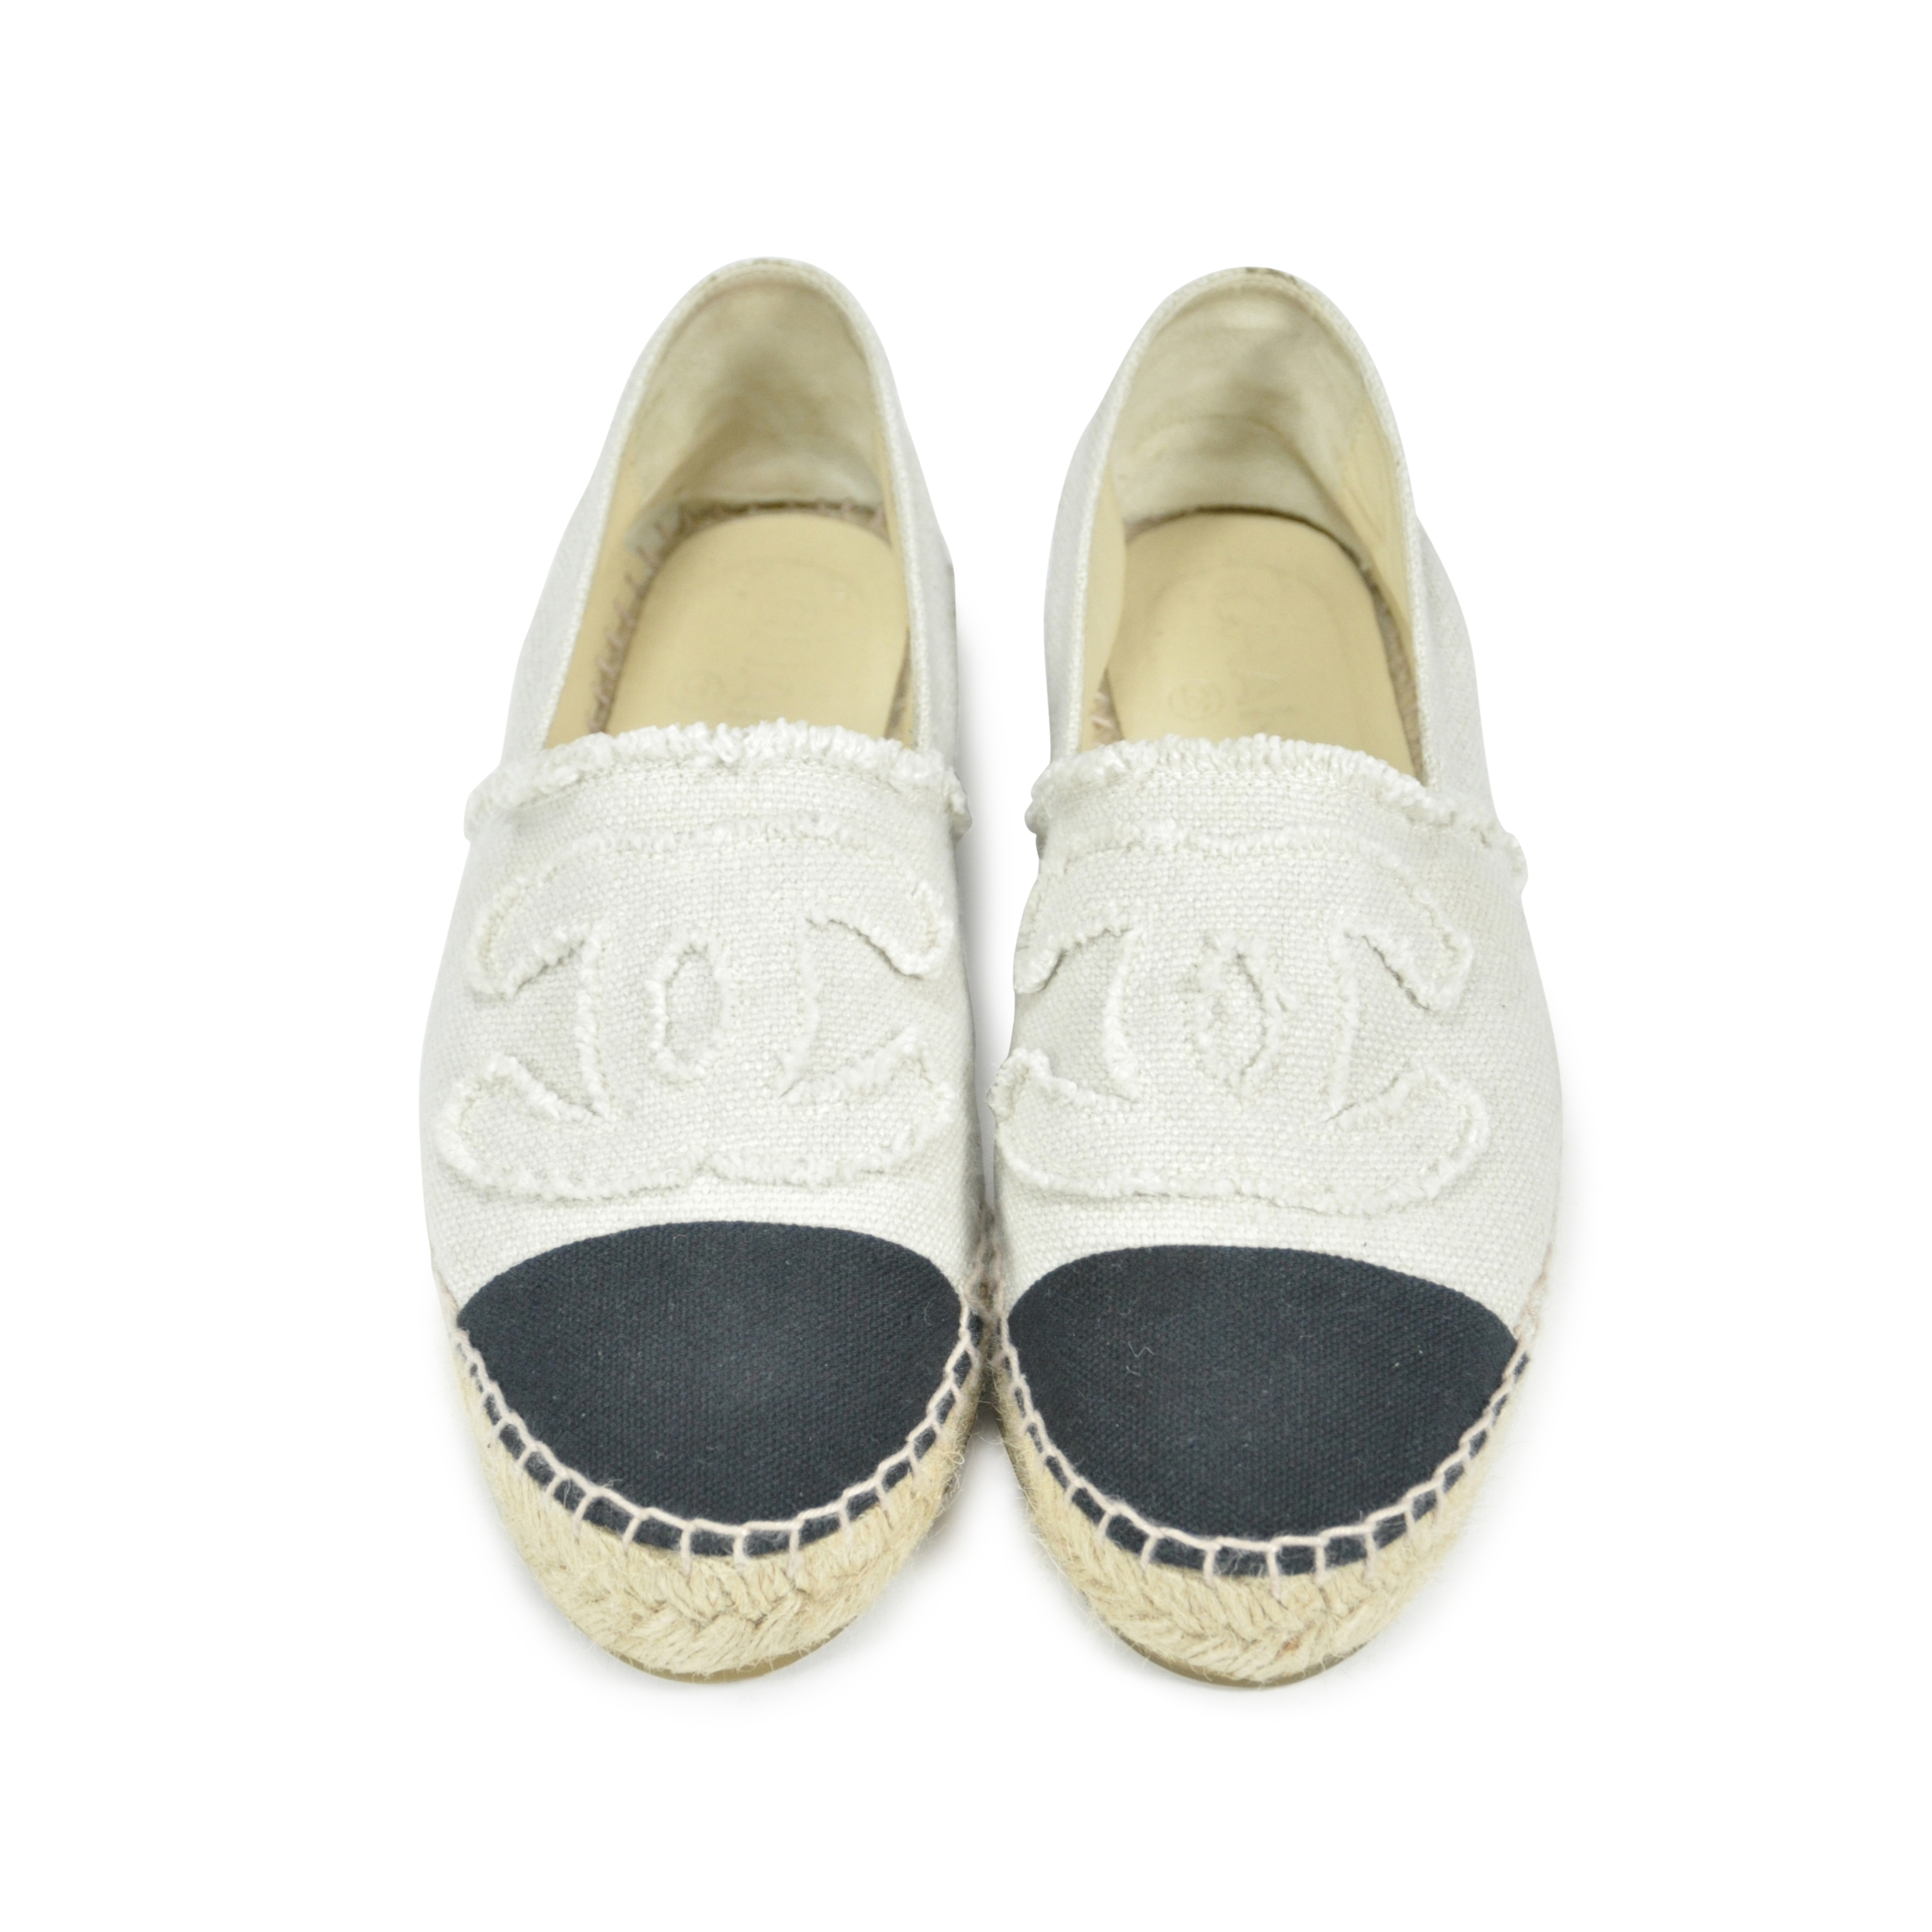 Chanel Espadrilles Shoe Size Chart Best Picture Of Chart Anyimage Org